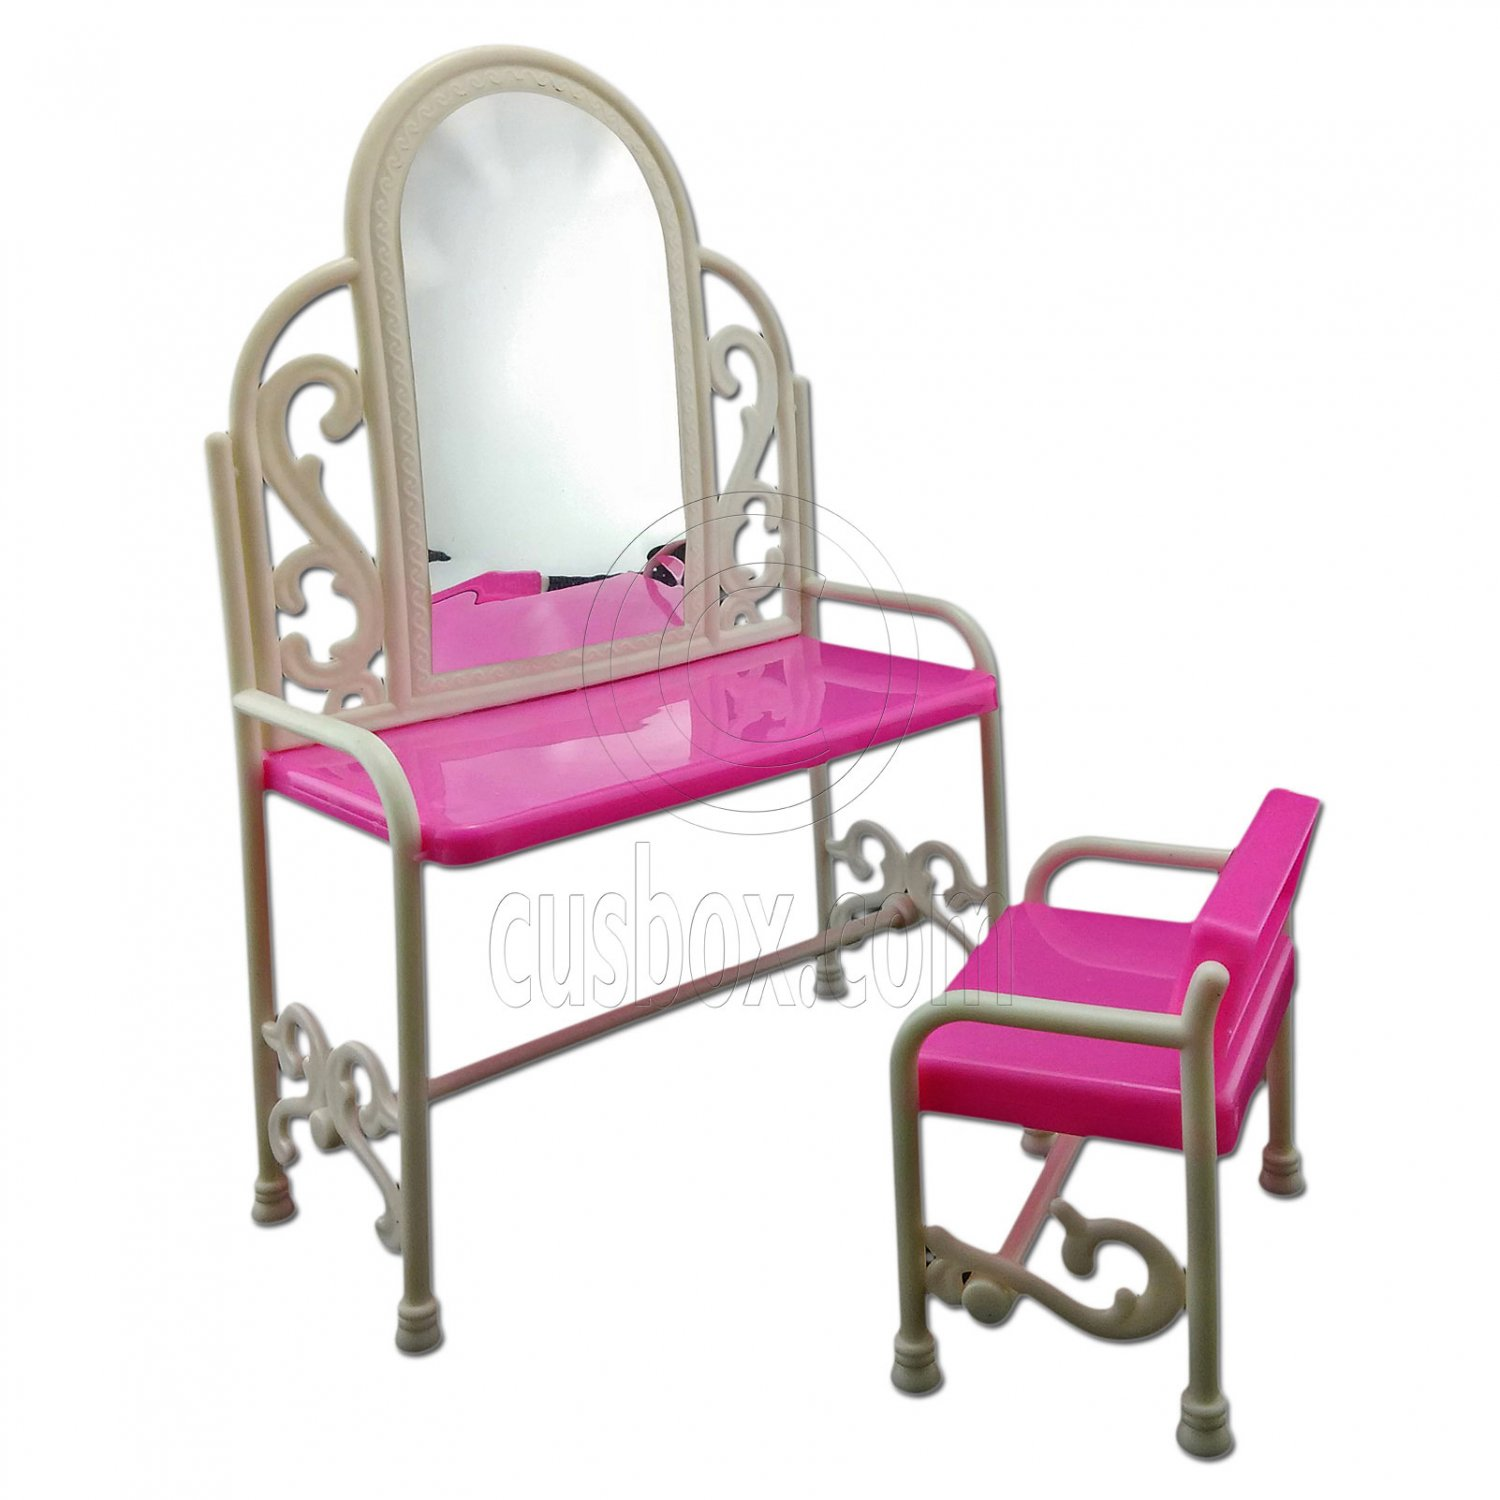 Set Vanity Mirror Desk Chair 1:6 Scale Barbie Doll's House Dollhouse Furniture #13073